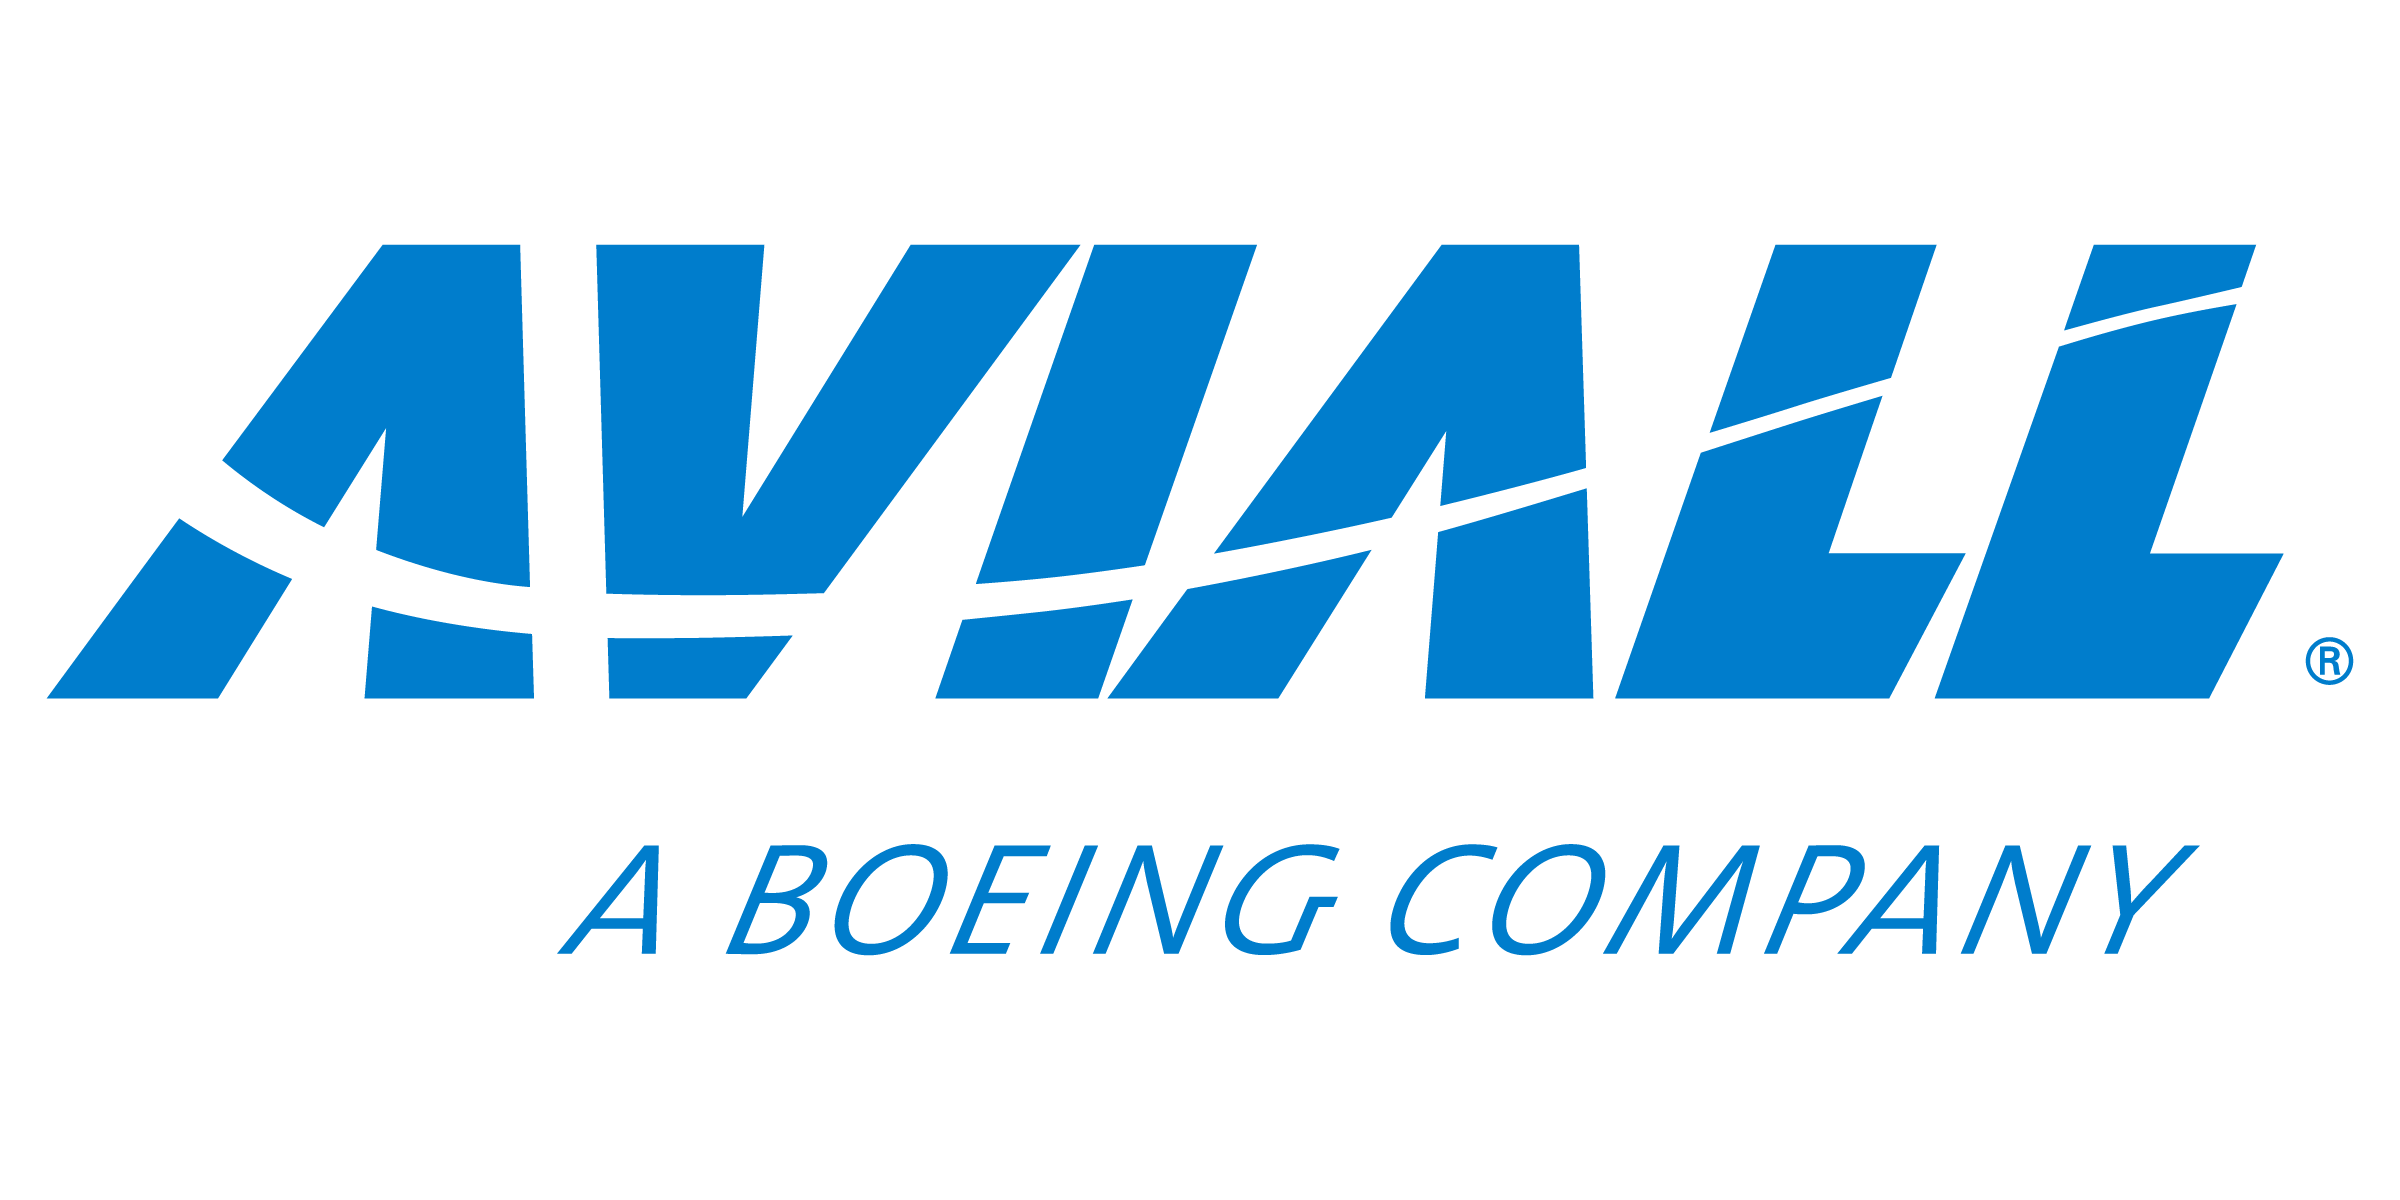 Aviall - A Boeing Company